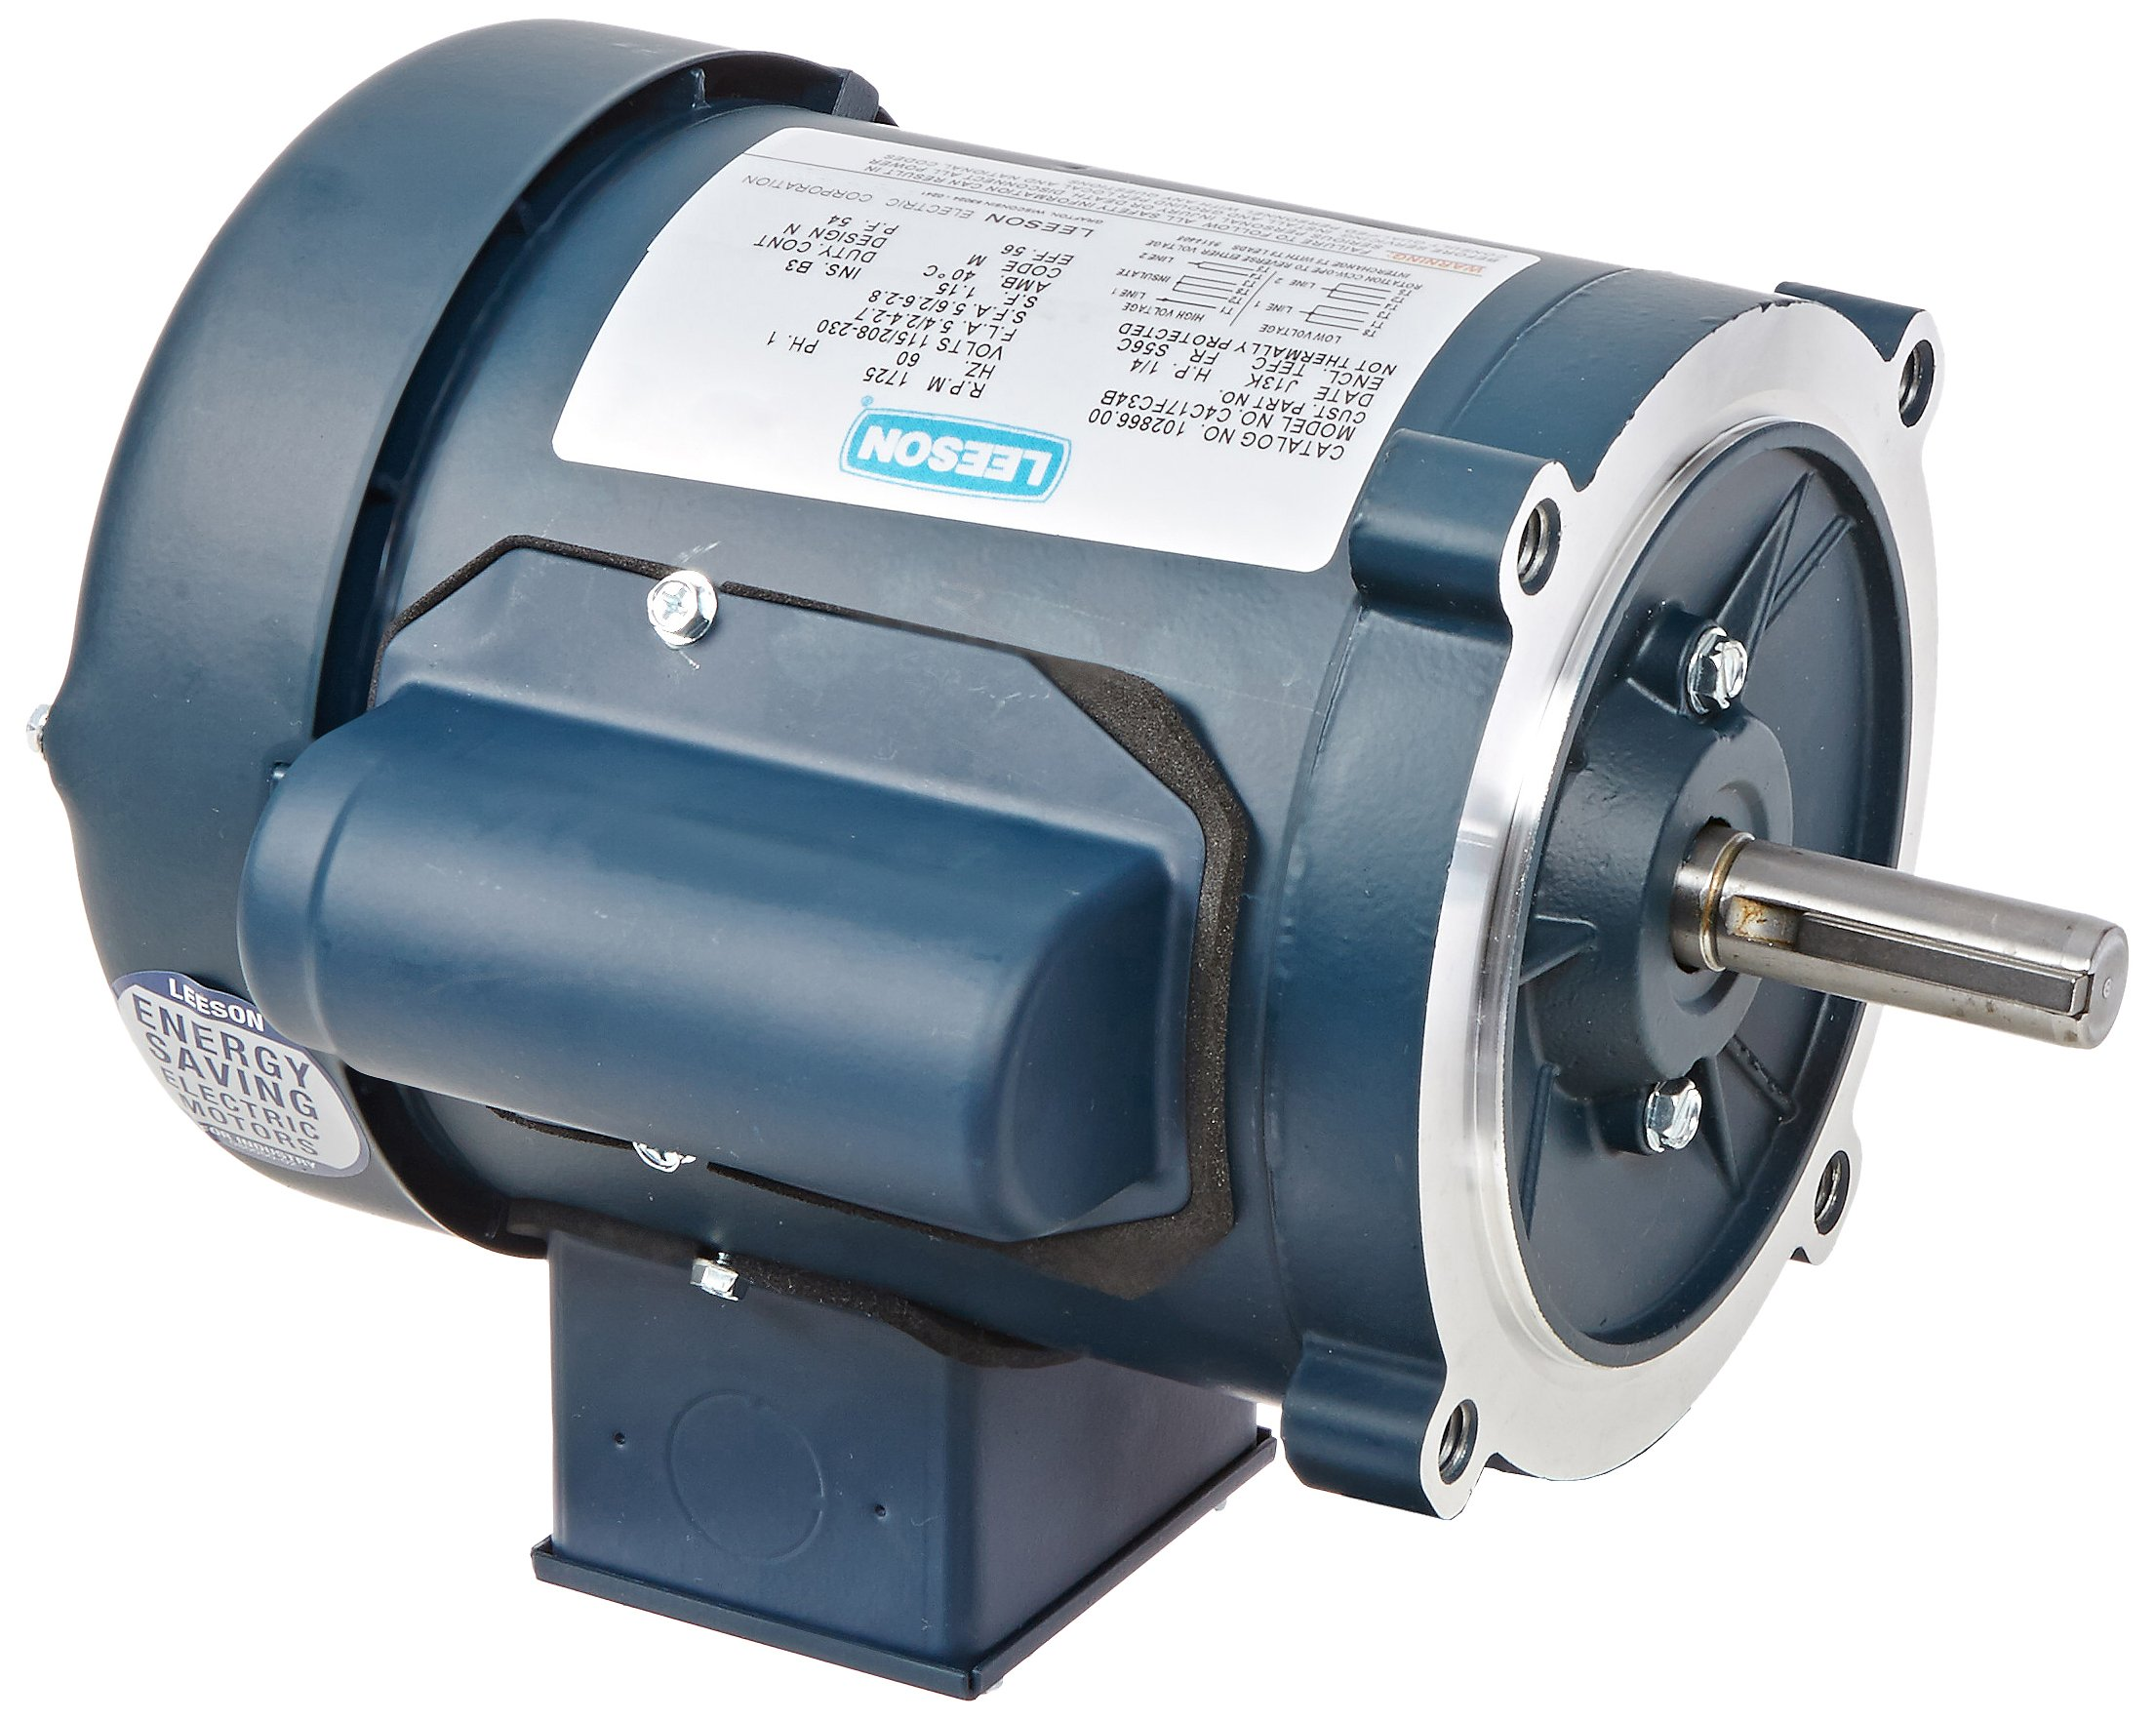 Leeson 102866.00 General Purpose C Face Motor, 1 Phase, S56C Frame, Round Mounting, 1/4HP, 1800 RPM, 115/208-230V Voltage, 60Hz Fequency